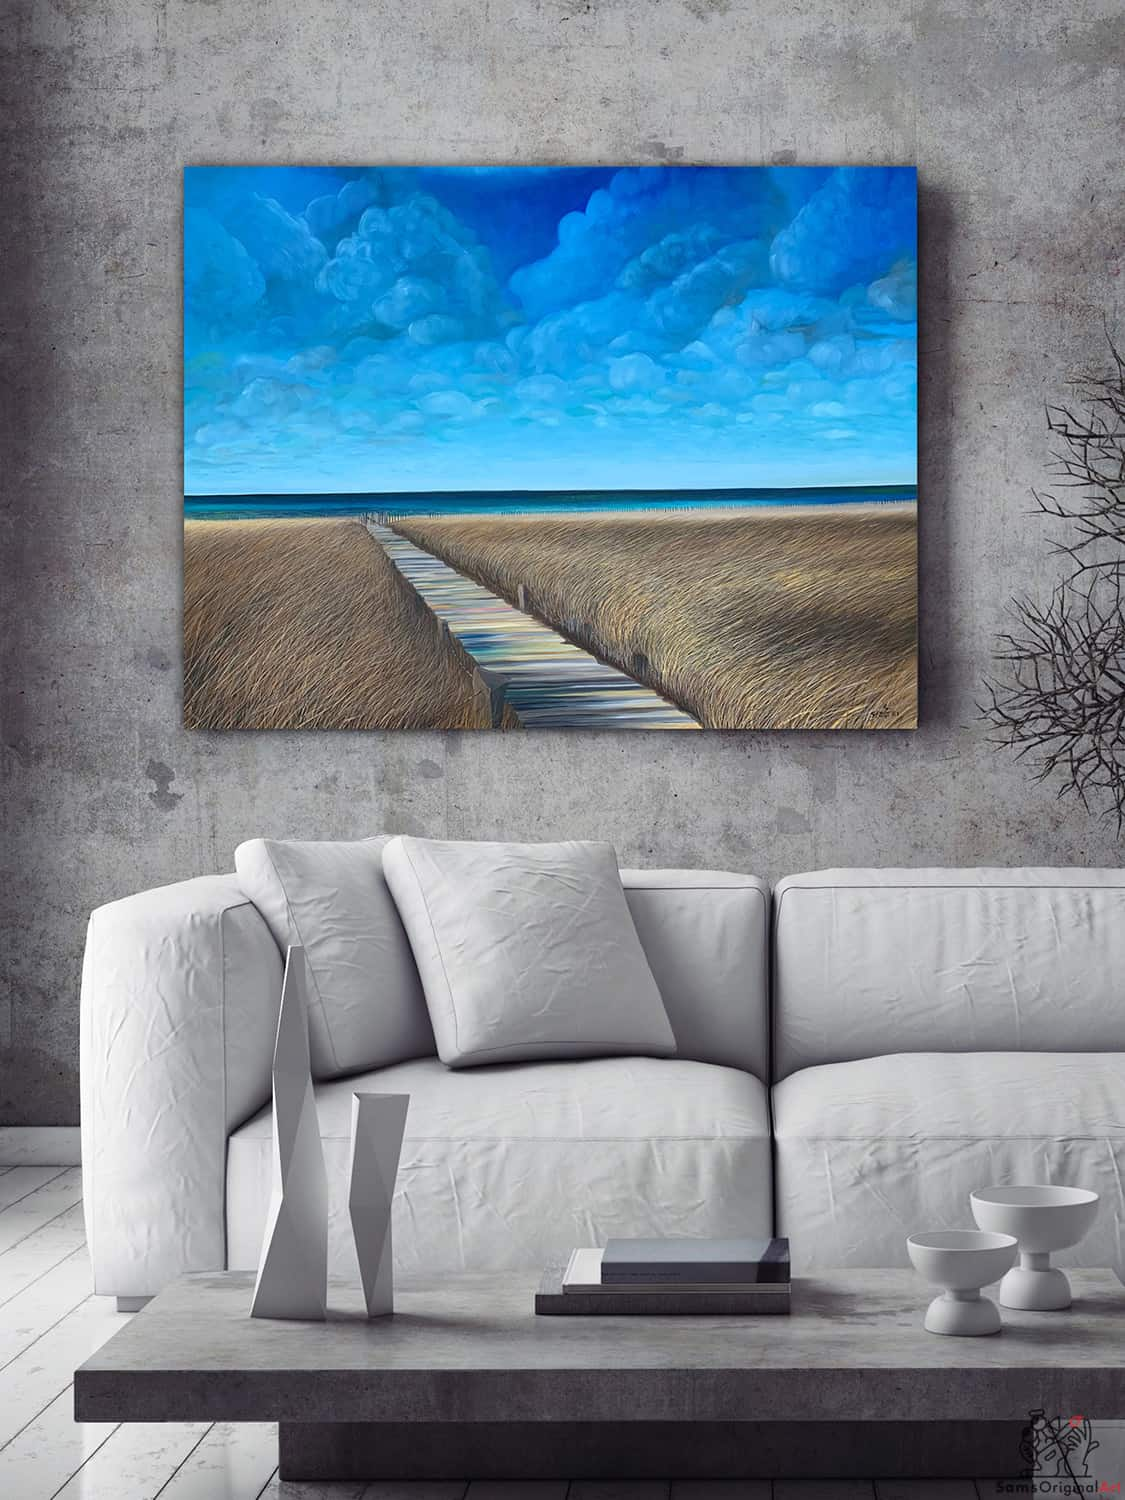 where to buy abstract landscape paintings